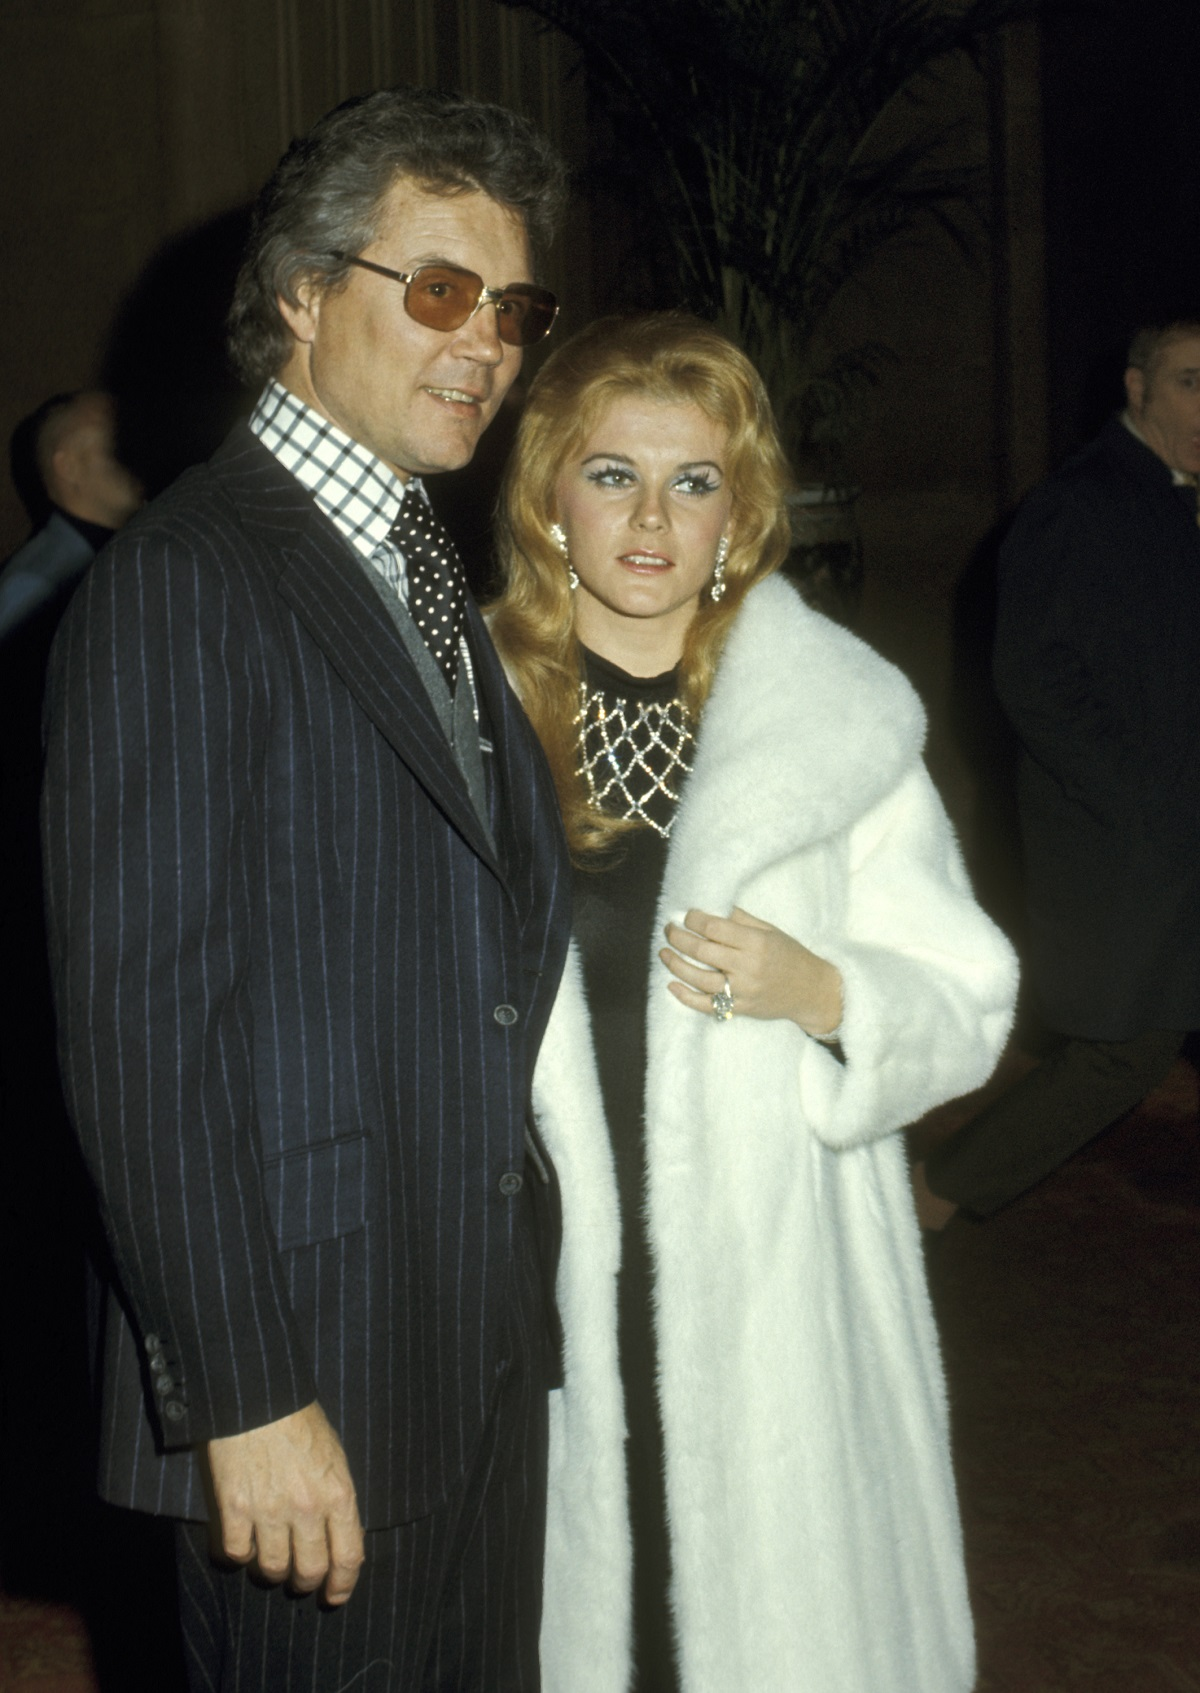 Ann-Margret and her husband Roger Smith in a candid shot at a 1971 event at the Waldorf-Astoria